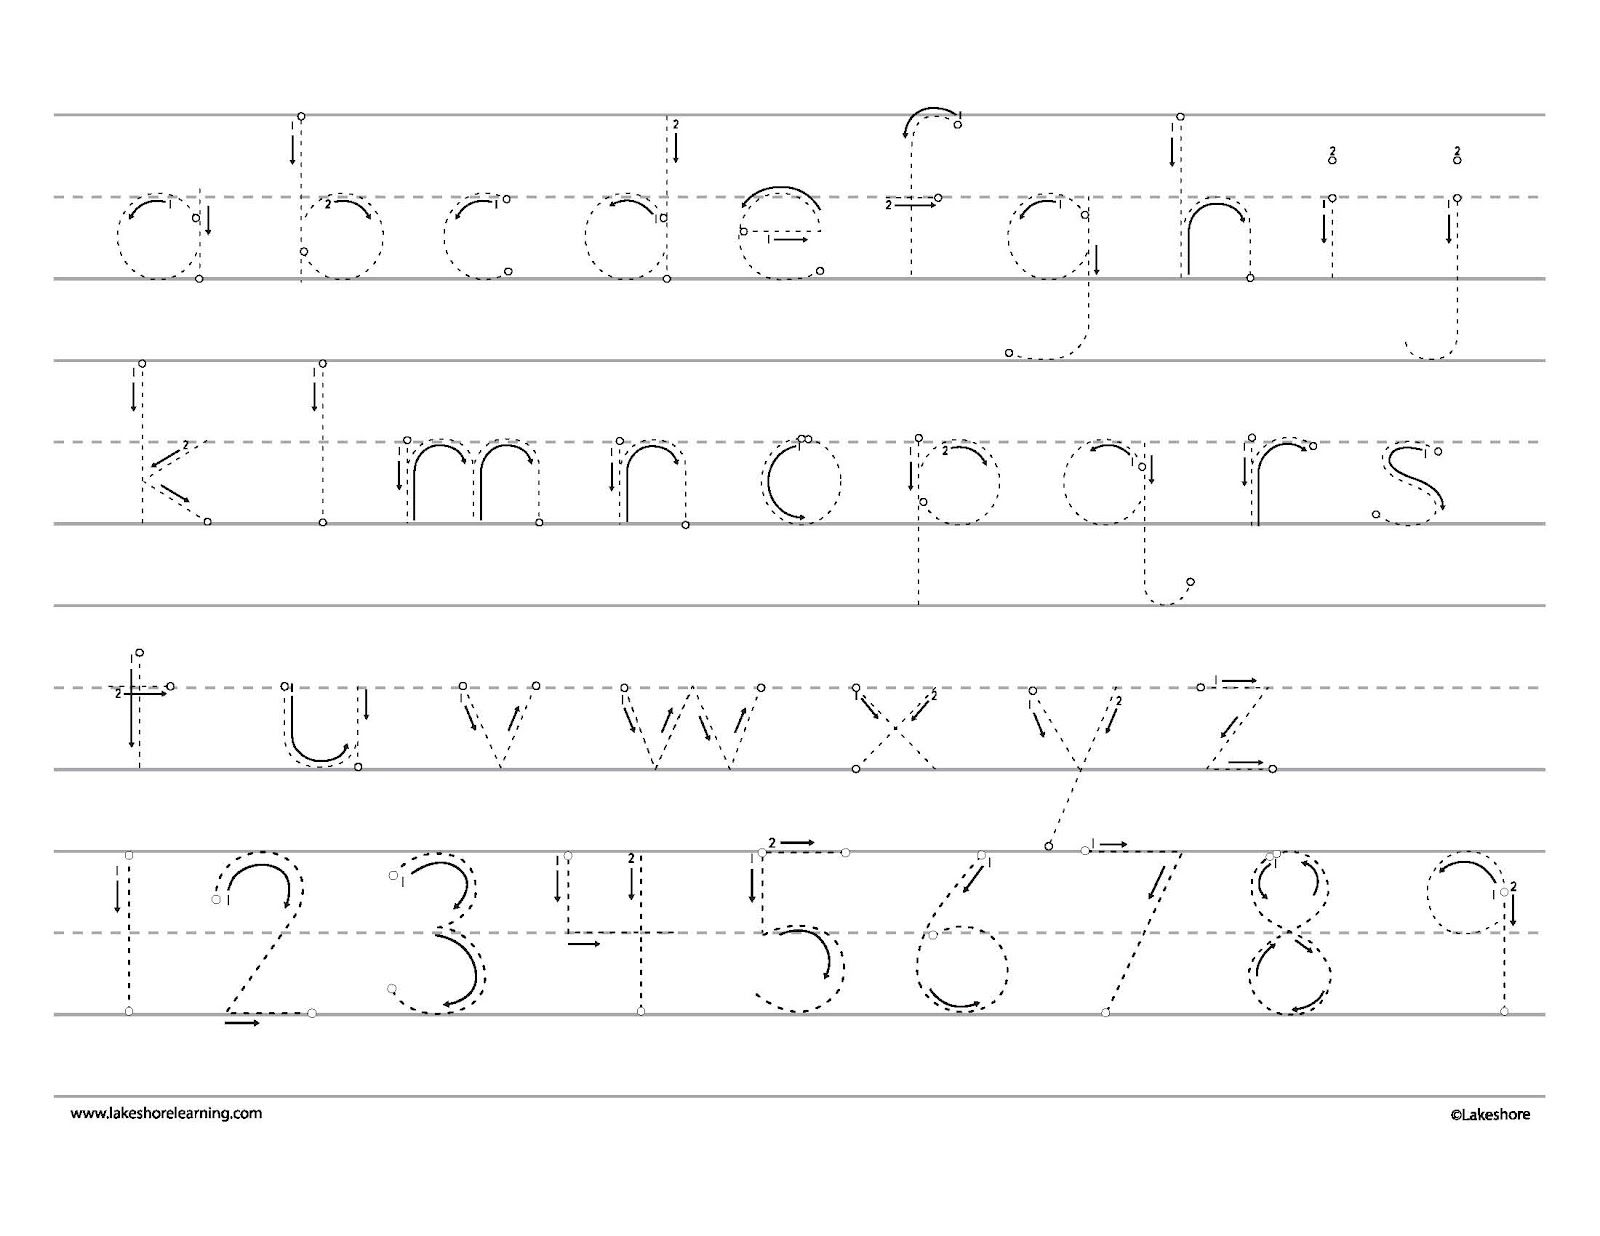 Printable alphabet worksheets for kids greek alphabet printable printable alphabet worksheets for kids greek alphabet printable worksheets for kids with printable worksheets for kids alphabets due to printable robcynllc Choice Image